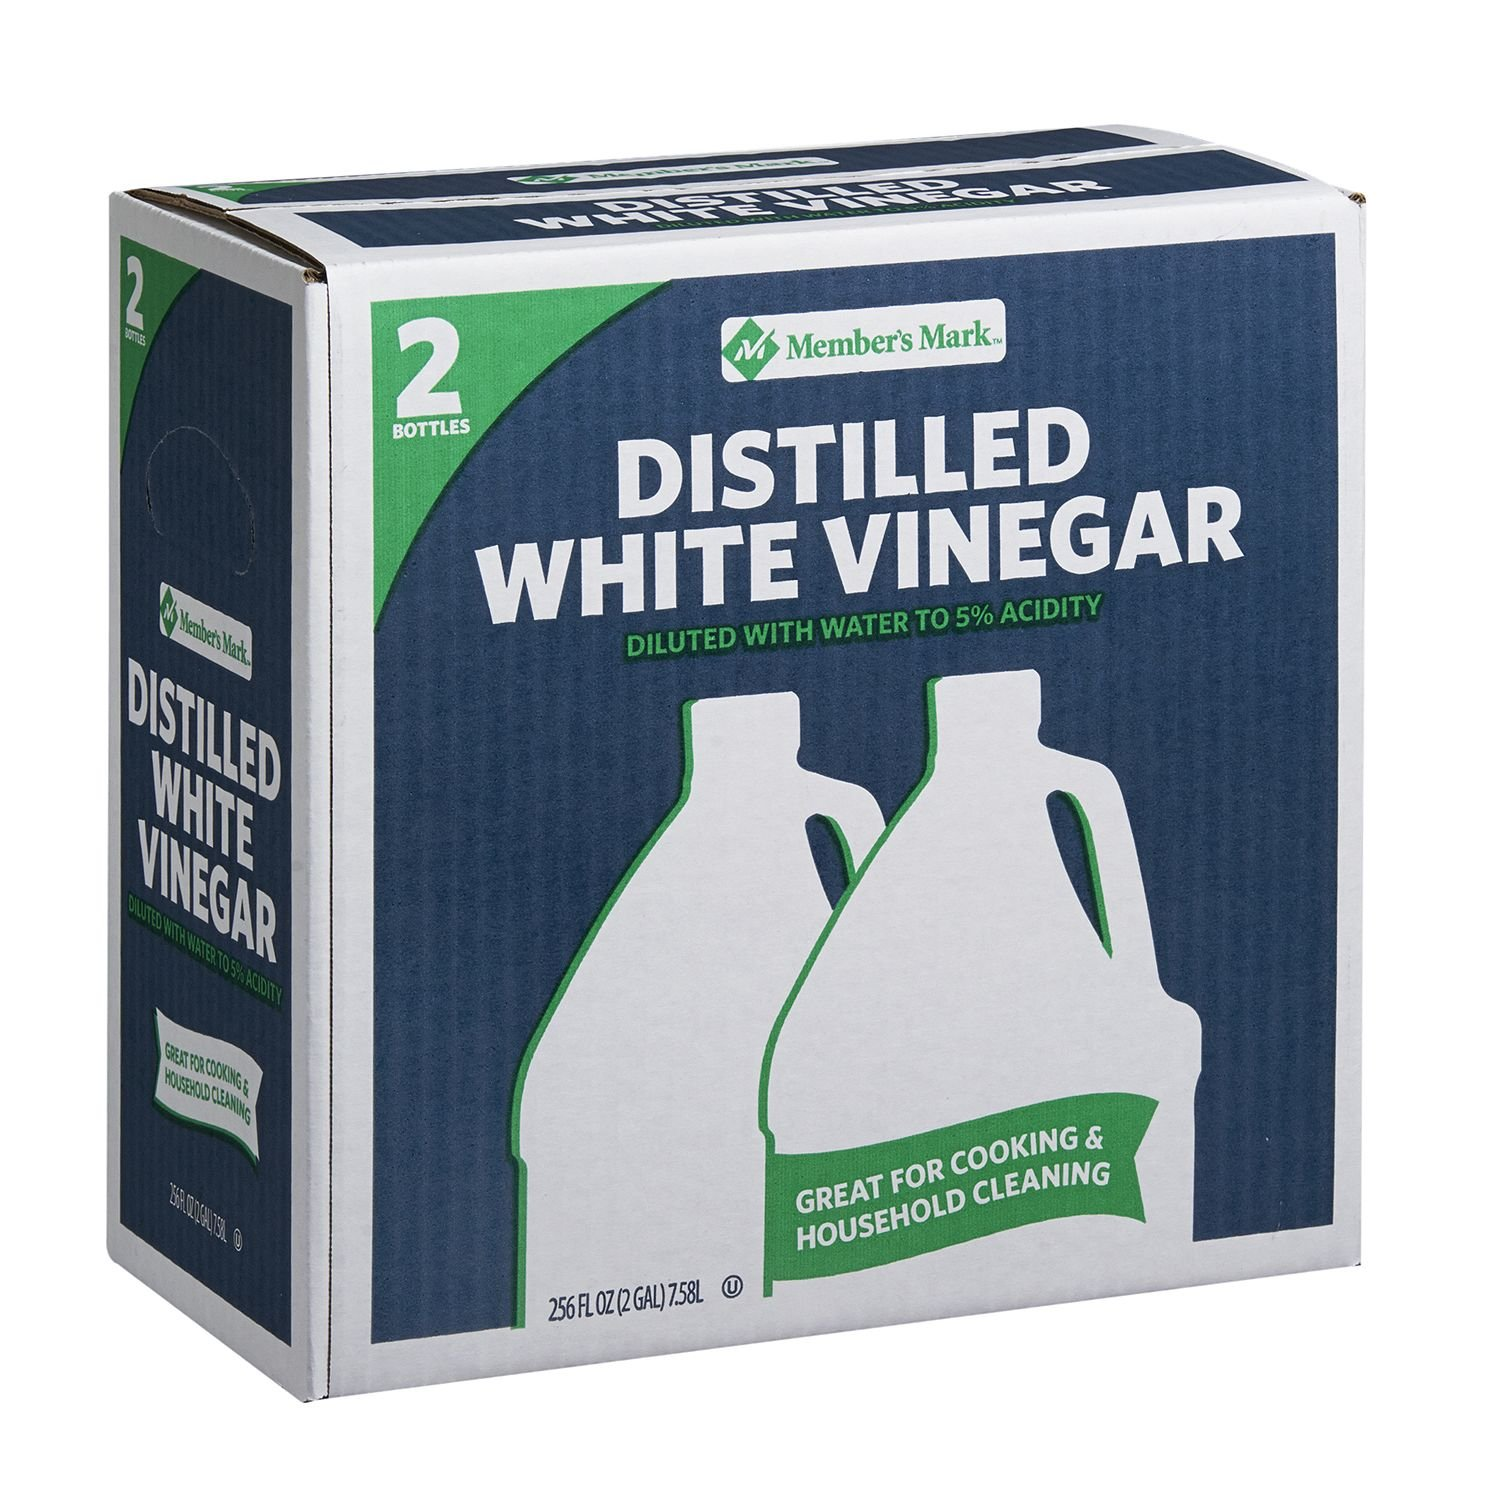 Member's Mark Distilled White Vinegar 1 gal. jug, 2 ct. A1